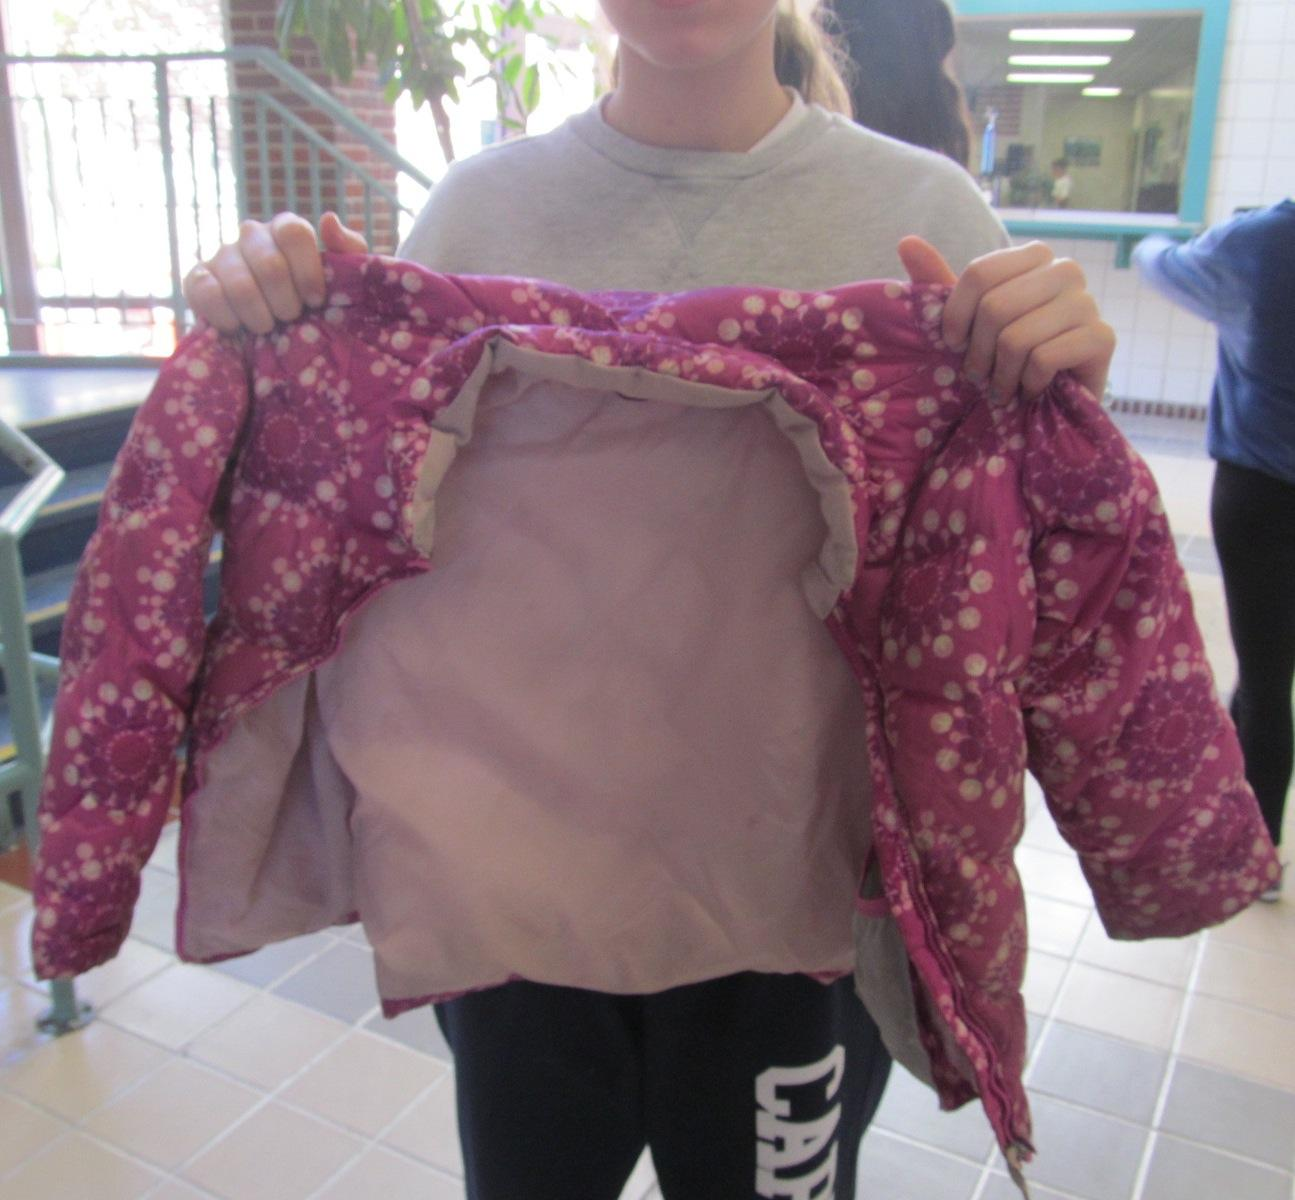 One of the items donated at Watertown Middle School for the annual Coats for Kids drive, which runs until Jan. 8, 2016.